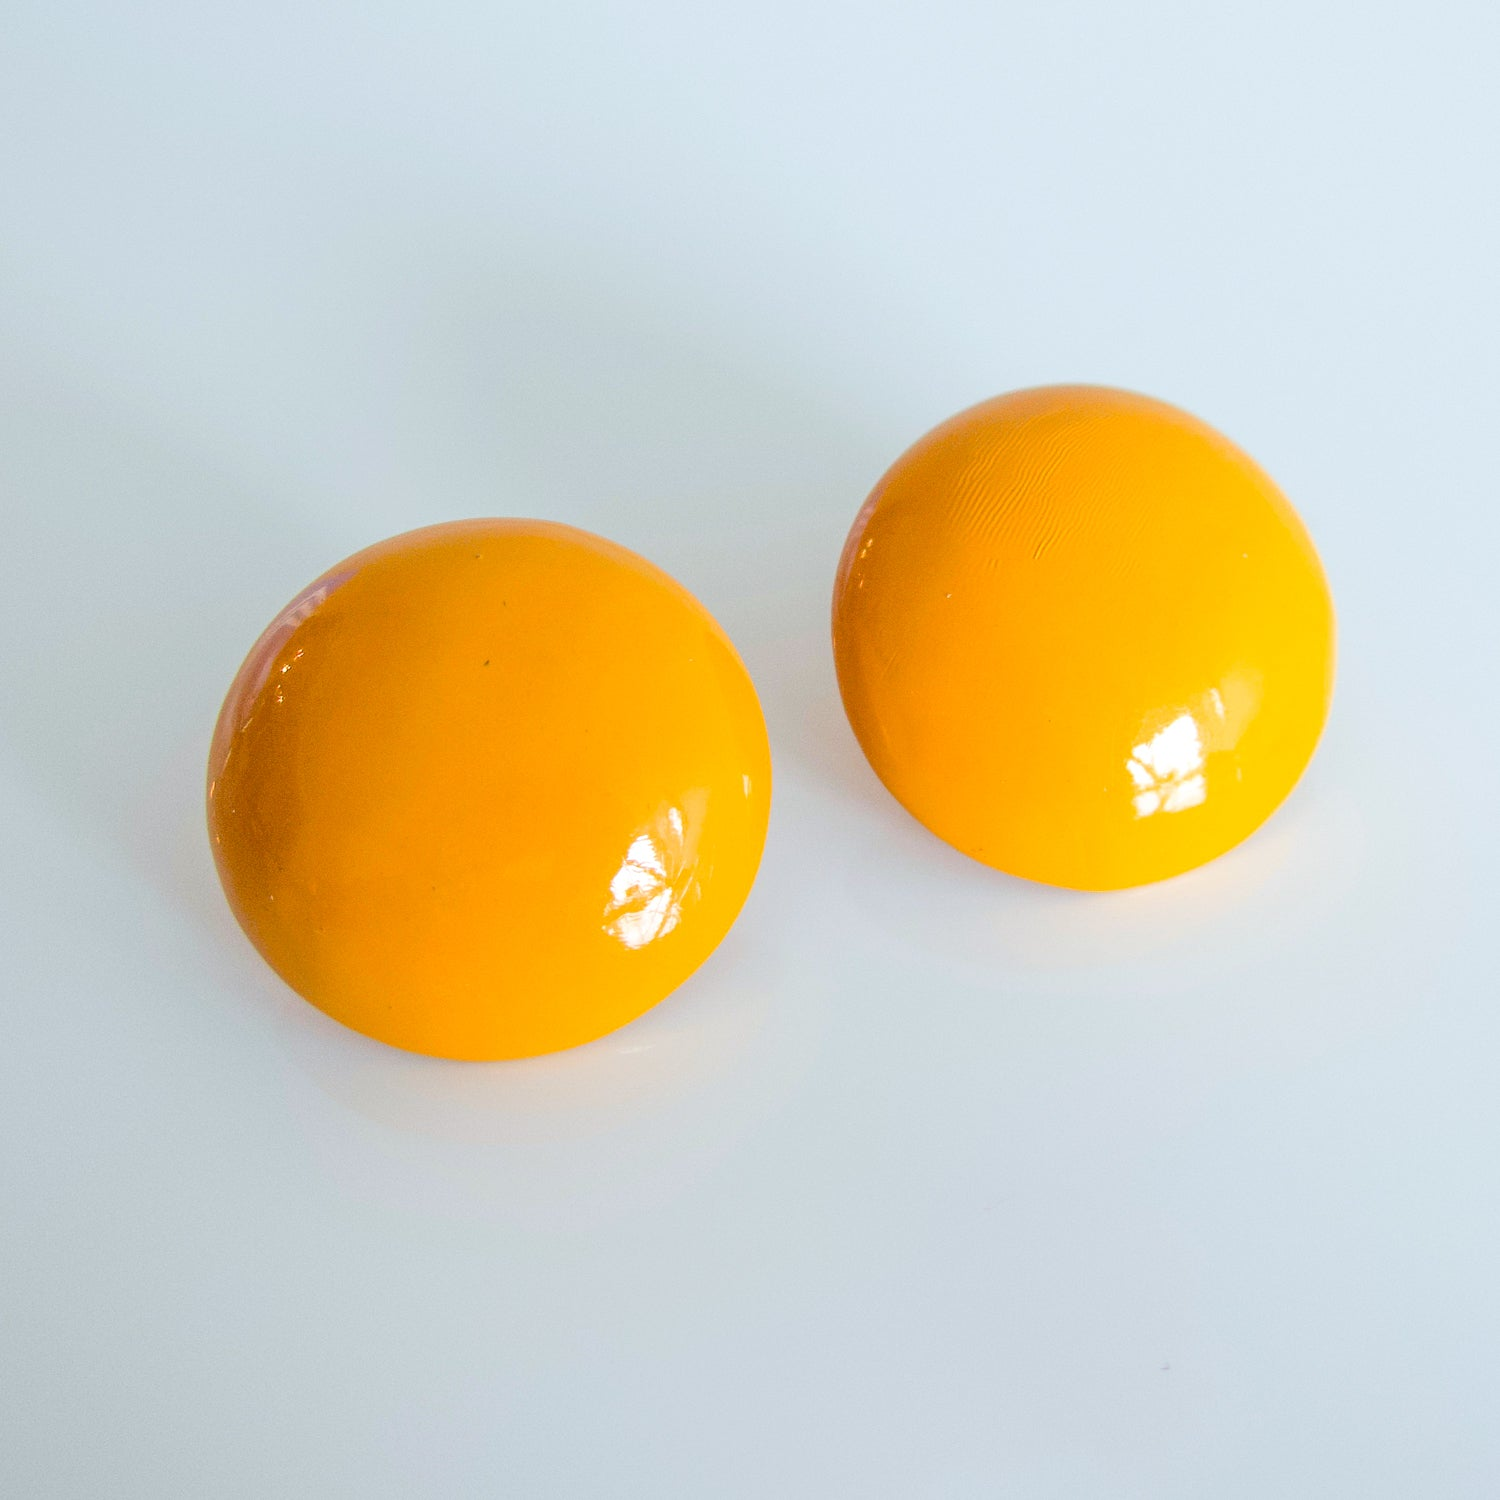 "Second Room Vintage Clothing. Get some egg yolks on your earlobes with these cute mustard yellow, round dome stud earrings! Earrings are 1.25"" across. Original earring backs have been replaced with new, clear silicone backings. Free North American shipping on all orders."